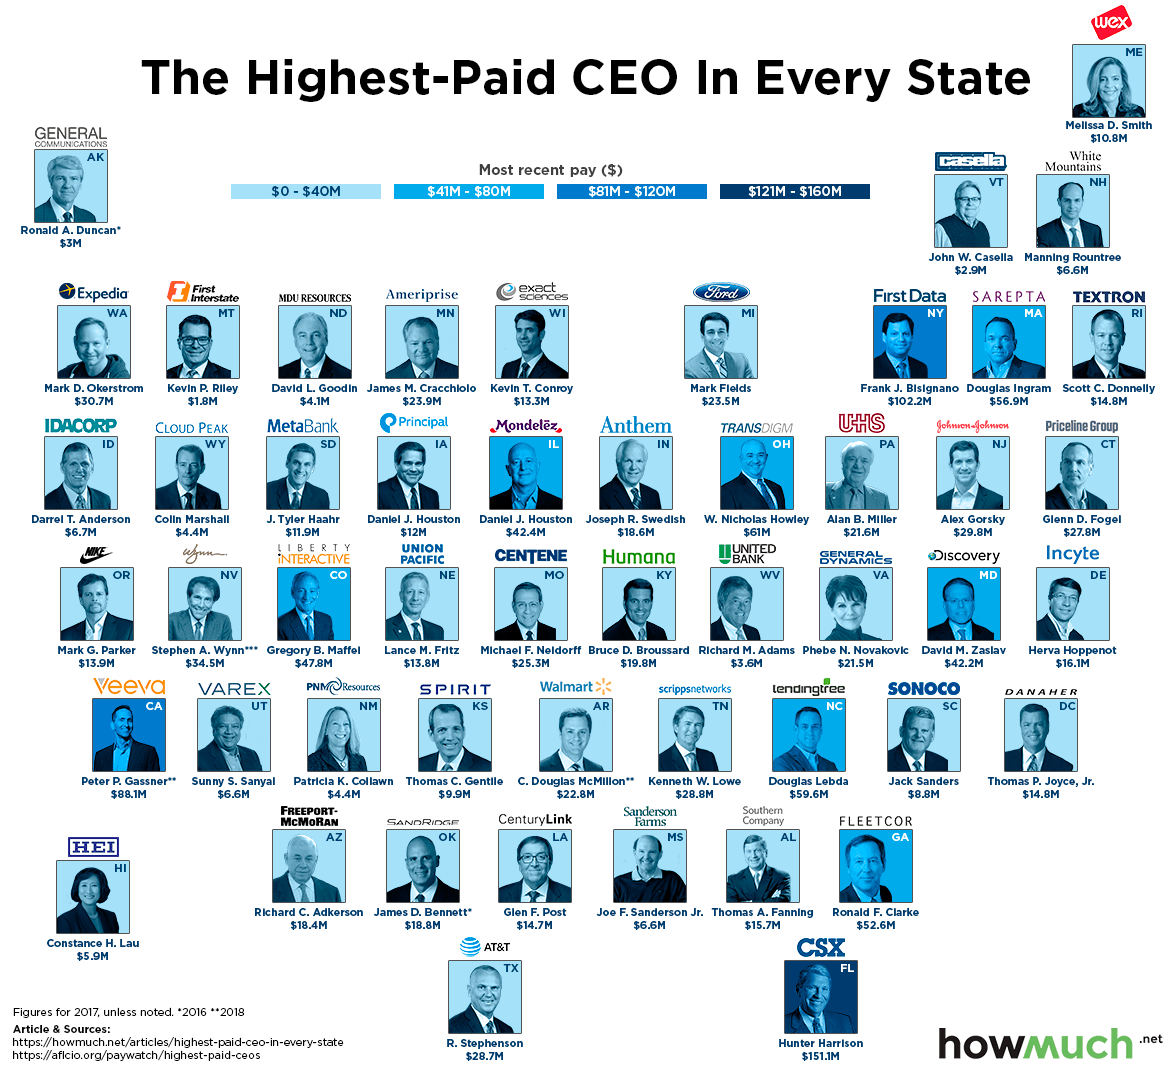 e06e9b6ef2a1 Mapping the Highest-Paid CEO in Every State